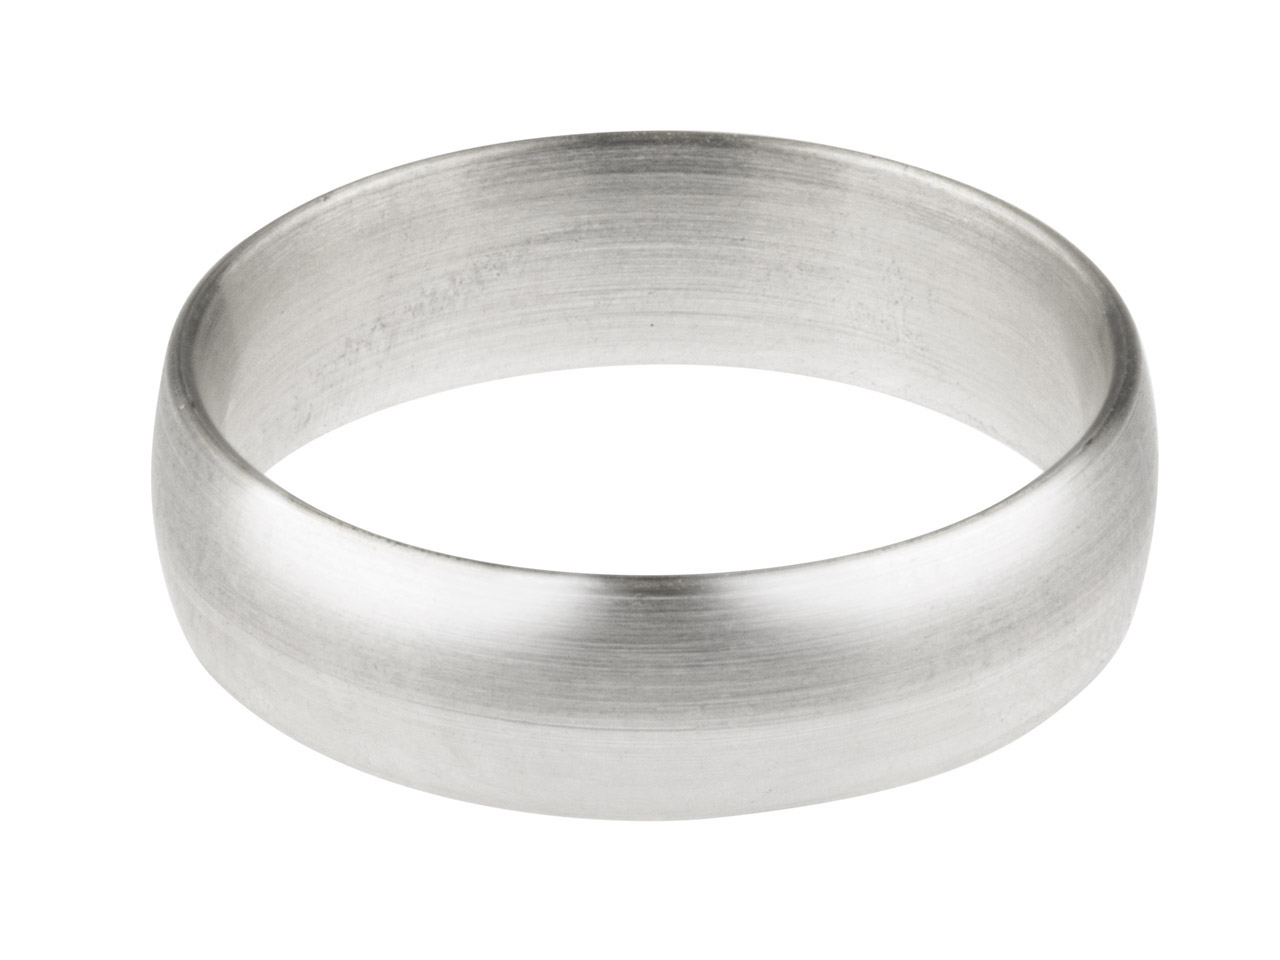 18ct White Gold Blended Court      Wedding Ring 5.0mm, Size N, 1.3mm  Wall, Hallmarked, Wall Thickness   1.30mm, 100% Recycled Gold